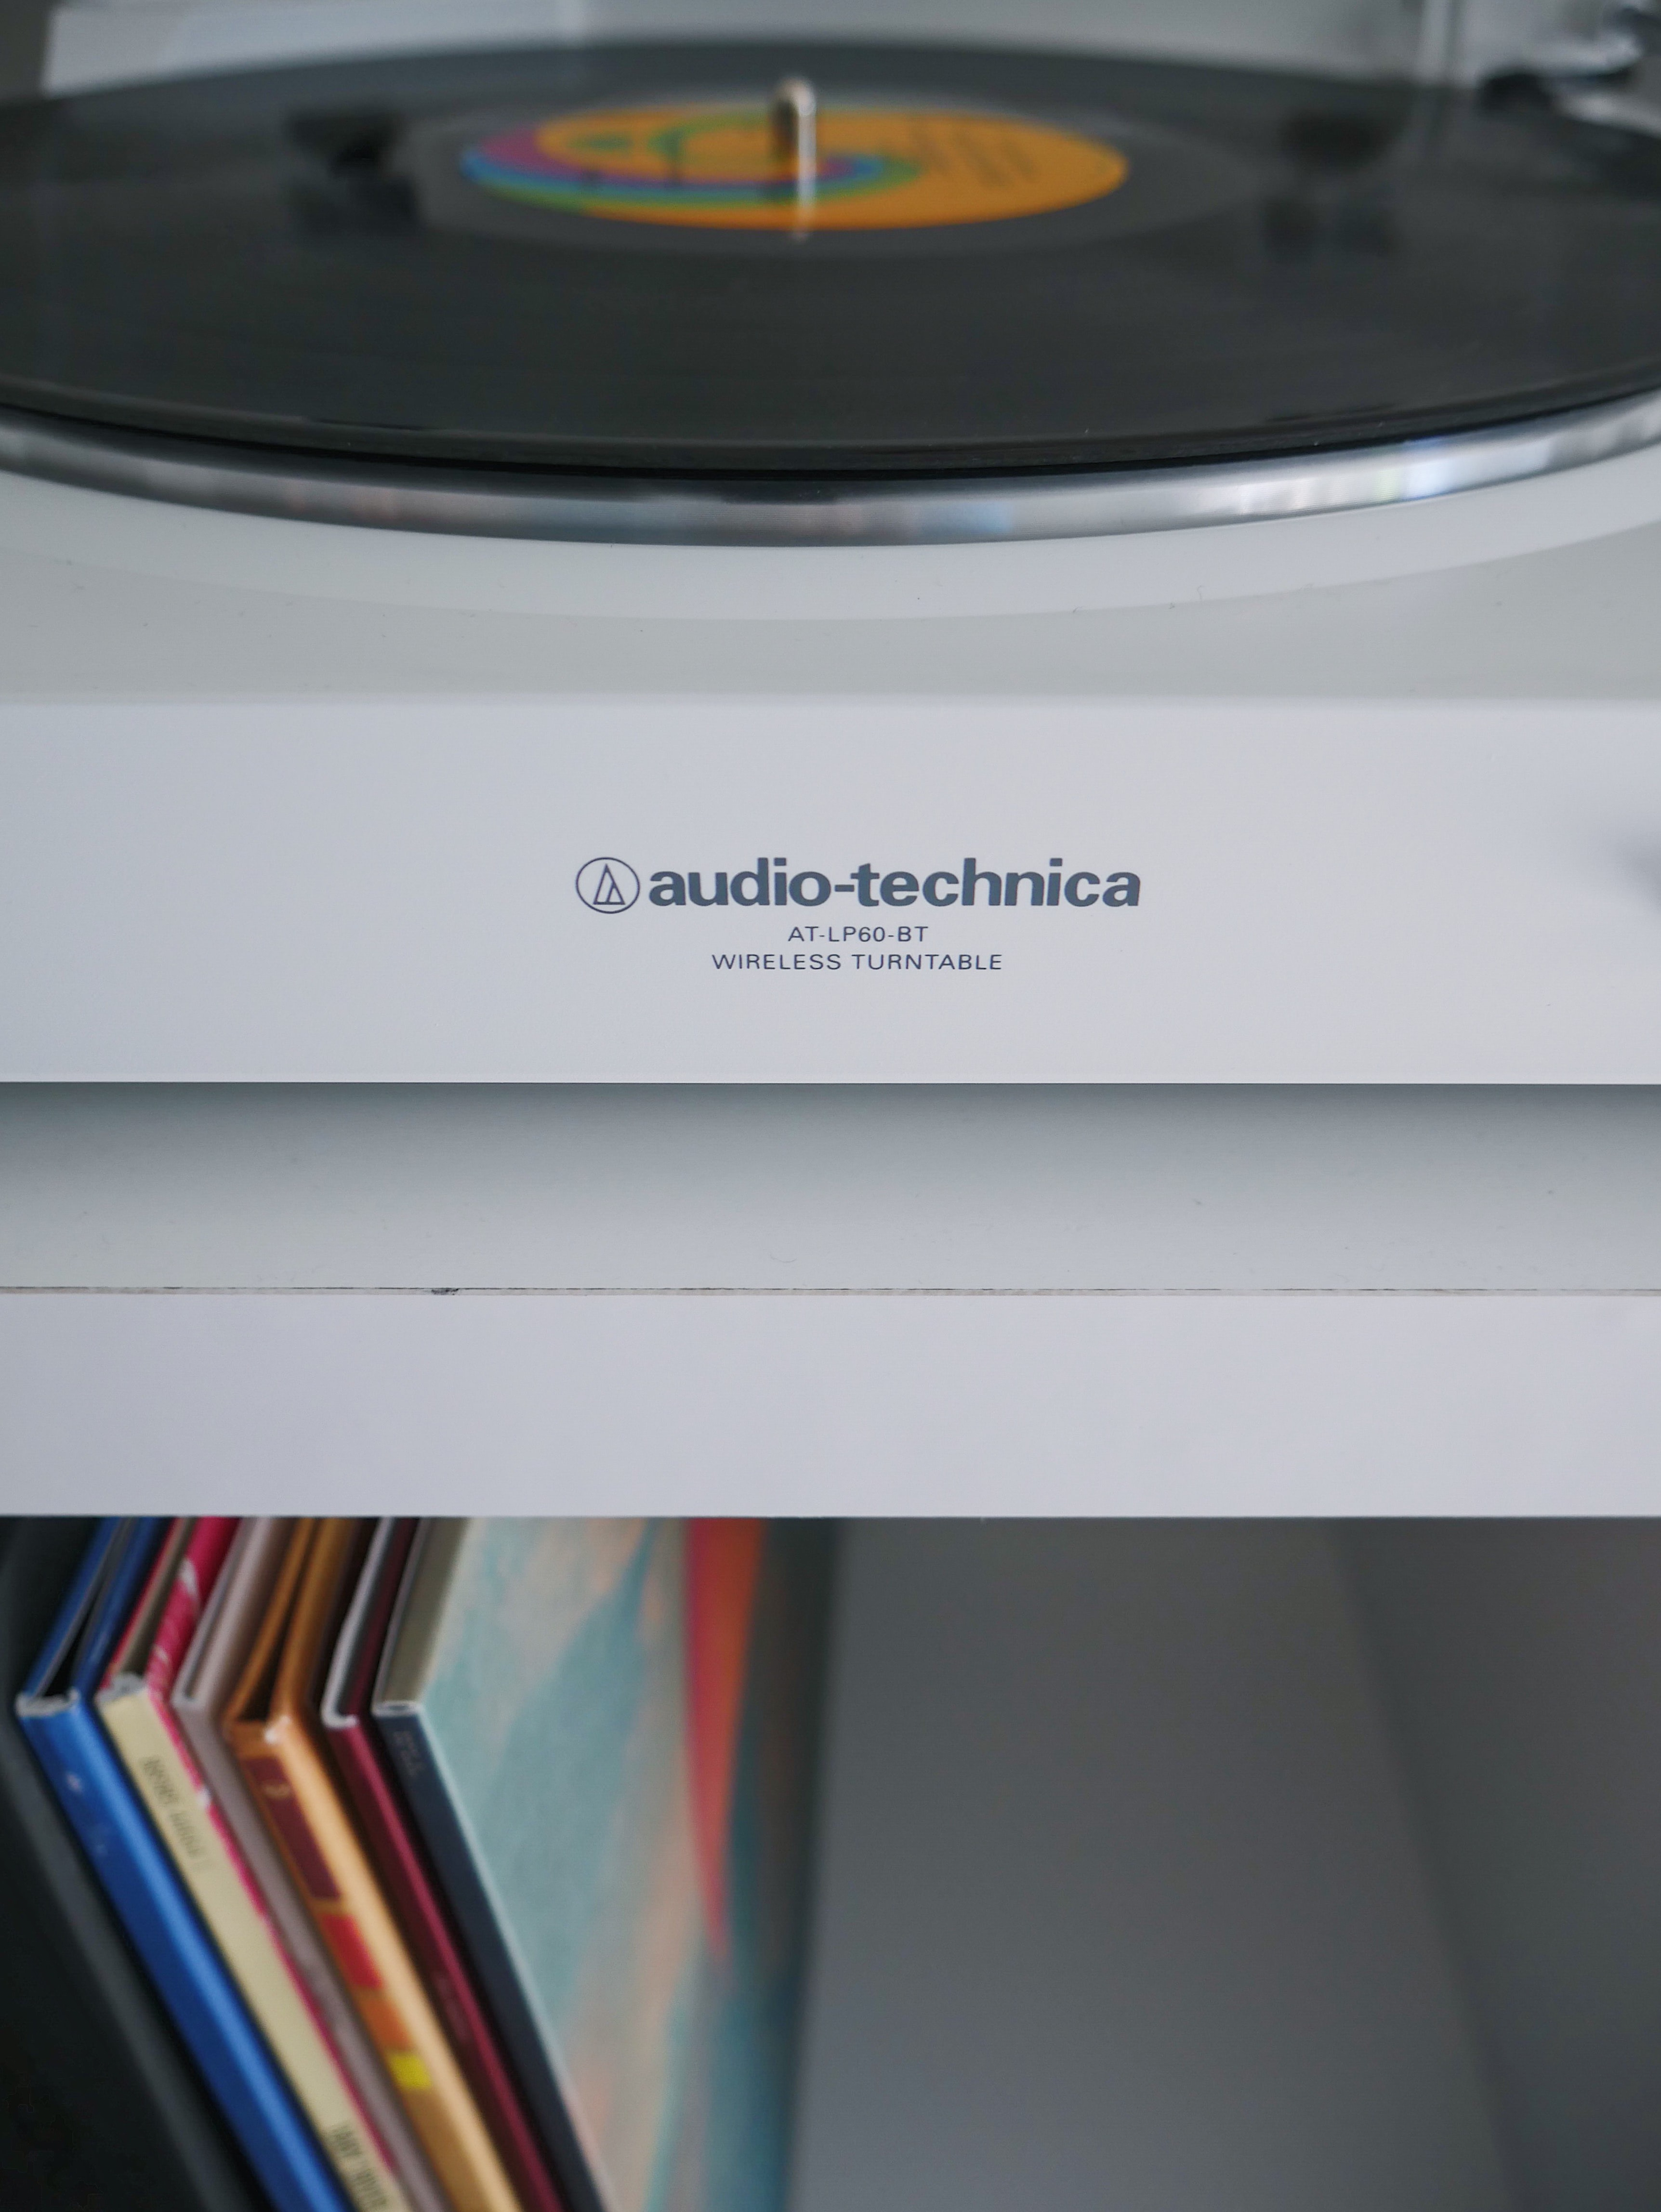 white Audio-Technica wireless turntable near vinyl record sleeve